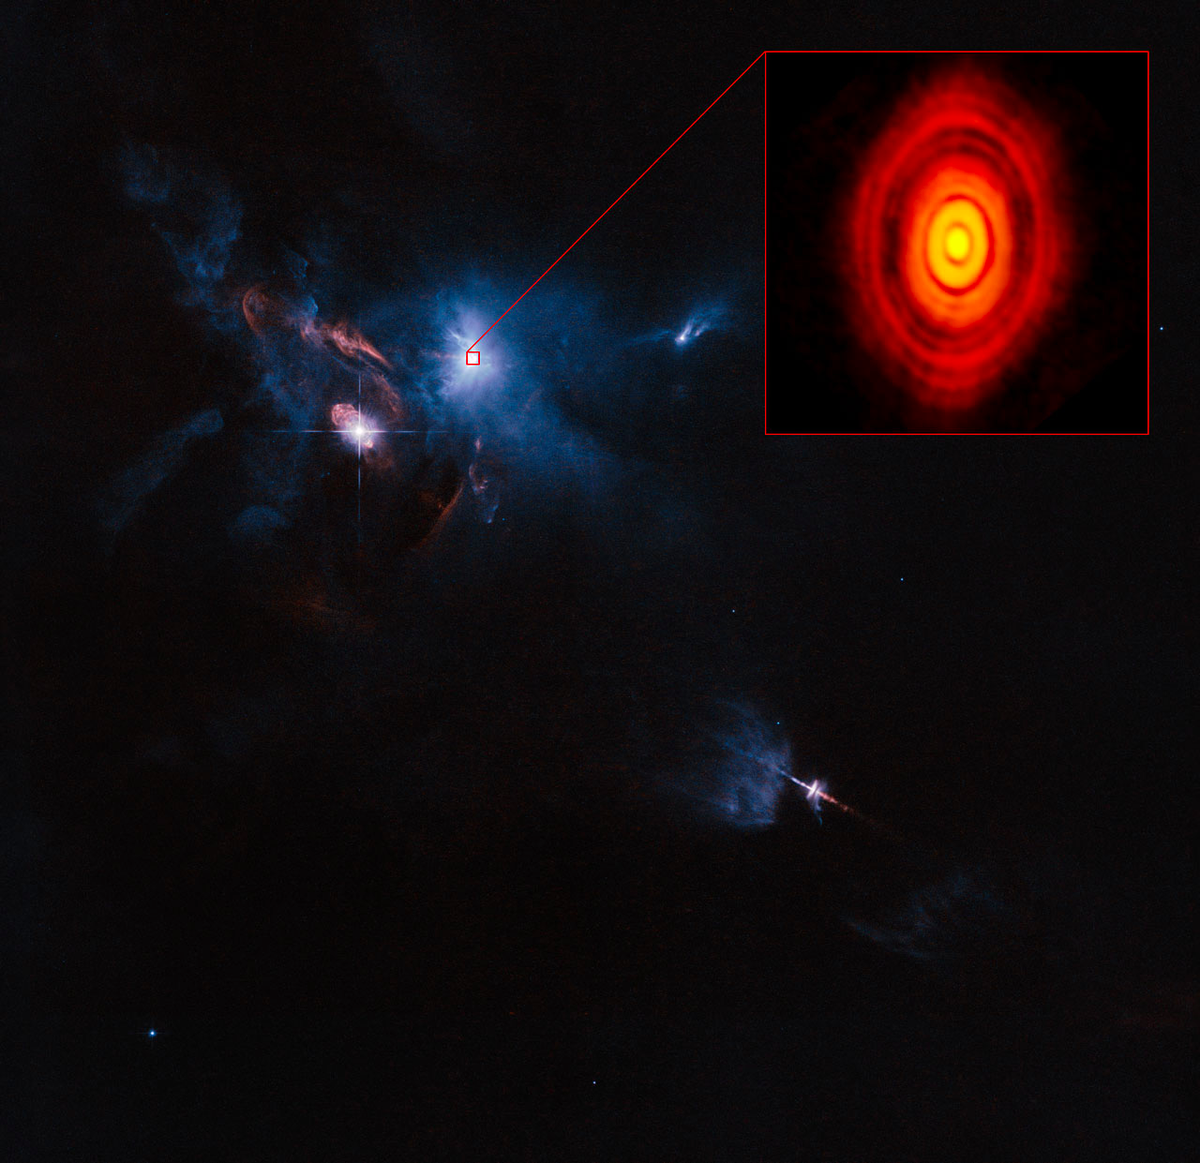 Whoa. A wide-field view of the area around the recently imaged porto-planetary disk. http://t.co/JgRb8nTiTJ http://t.co/10esrl4lWB